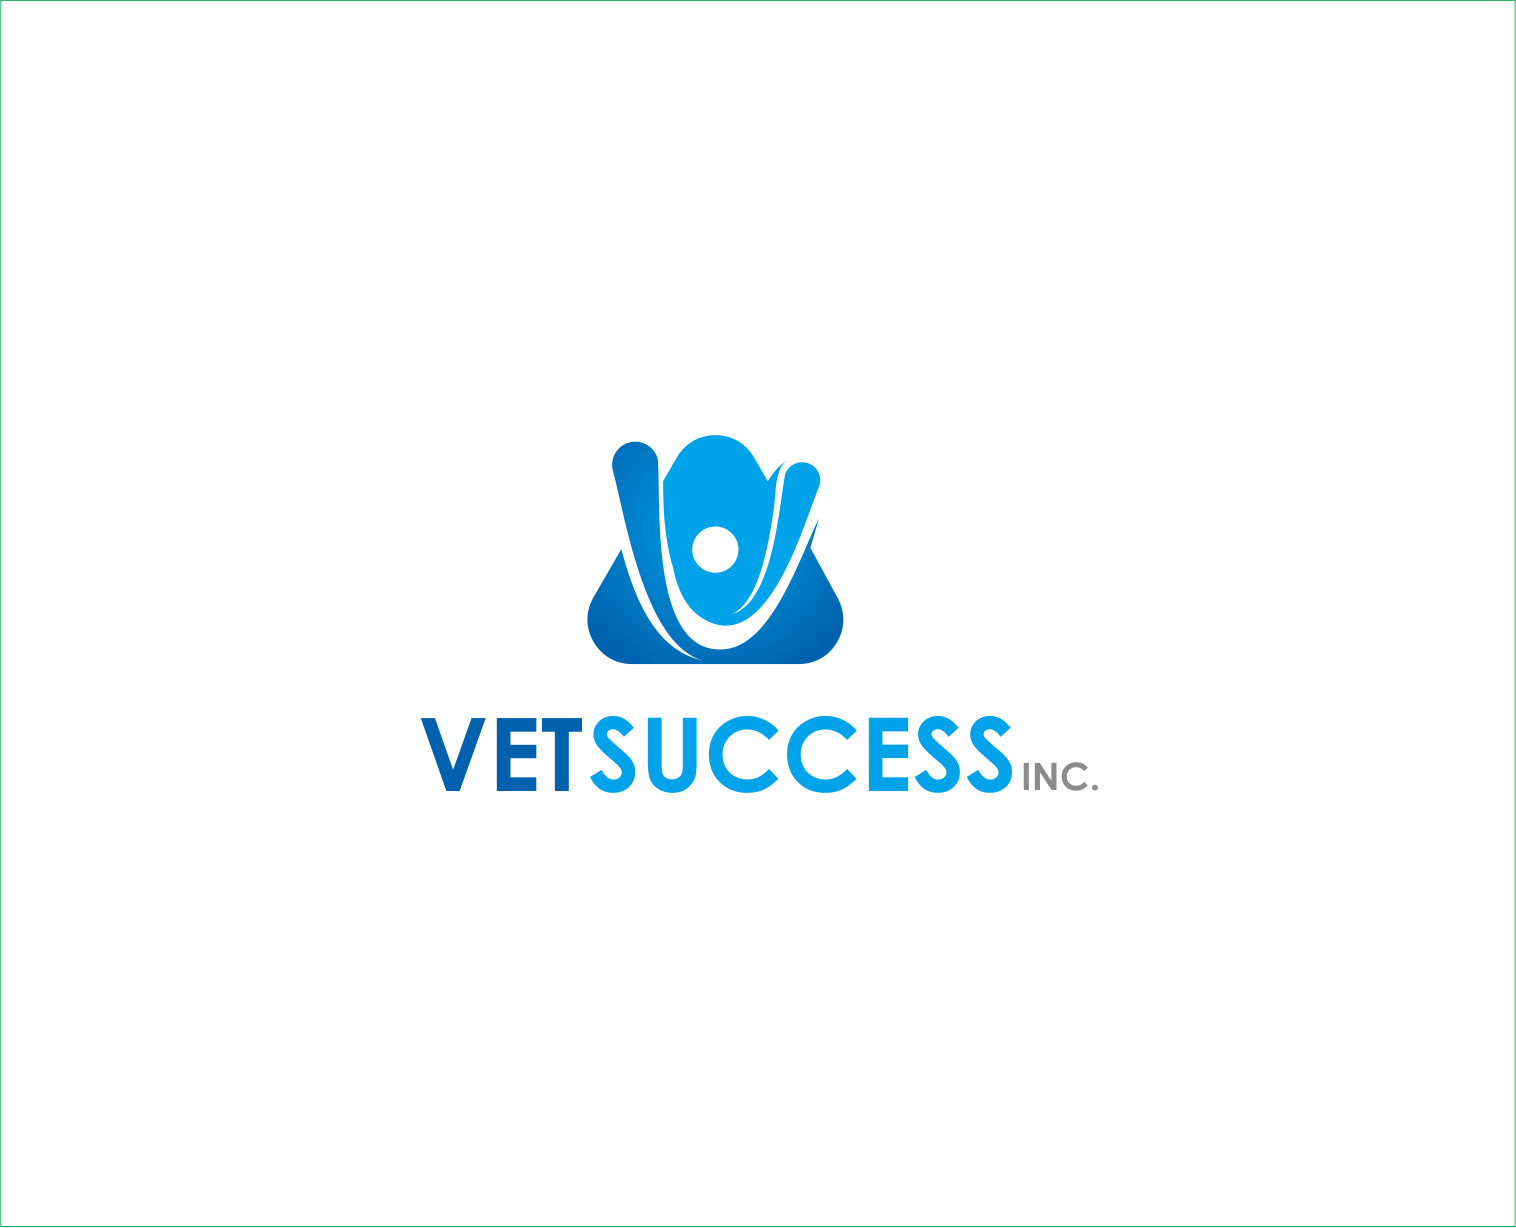 Logo Design by Armada Jamaluddin - Entry No. 123 in the Logo Design Contest Imaginative Logo Design for Vet Success Inc..